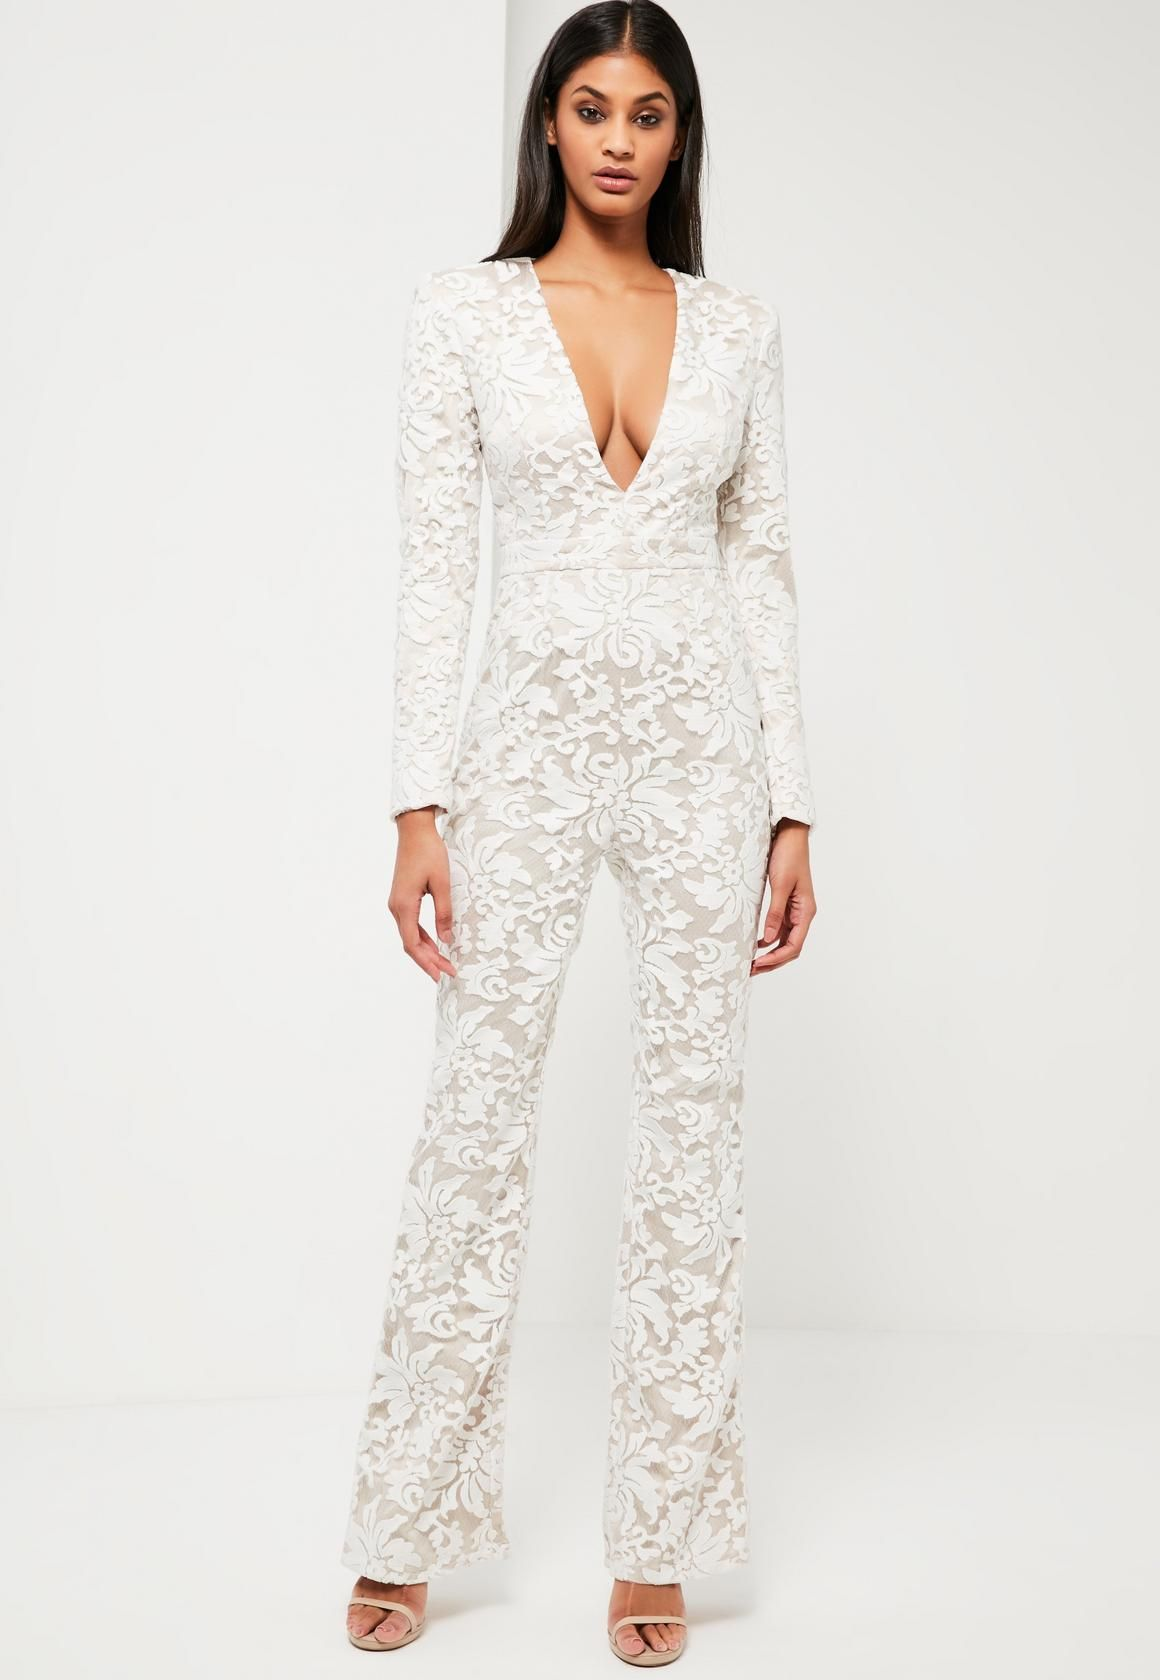 7af435c146f Missguided - Peace Love White Lace Plunge Jumpsuit